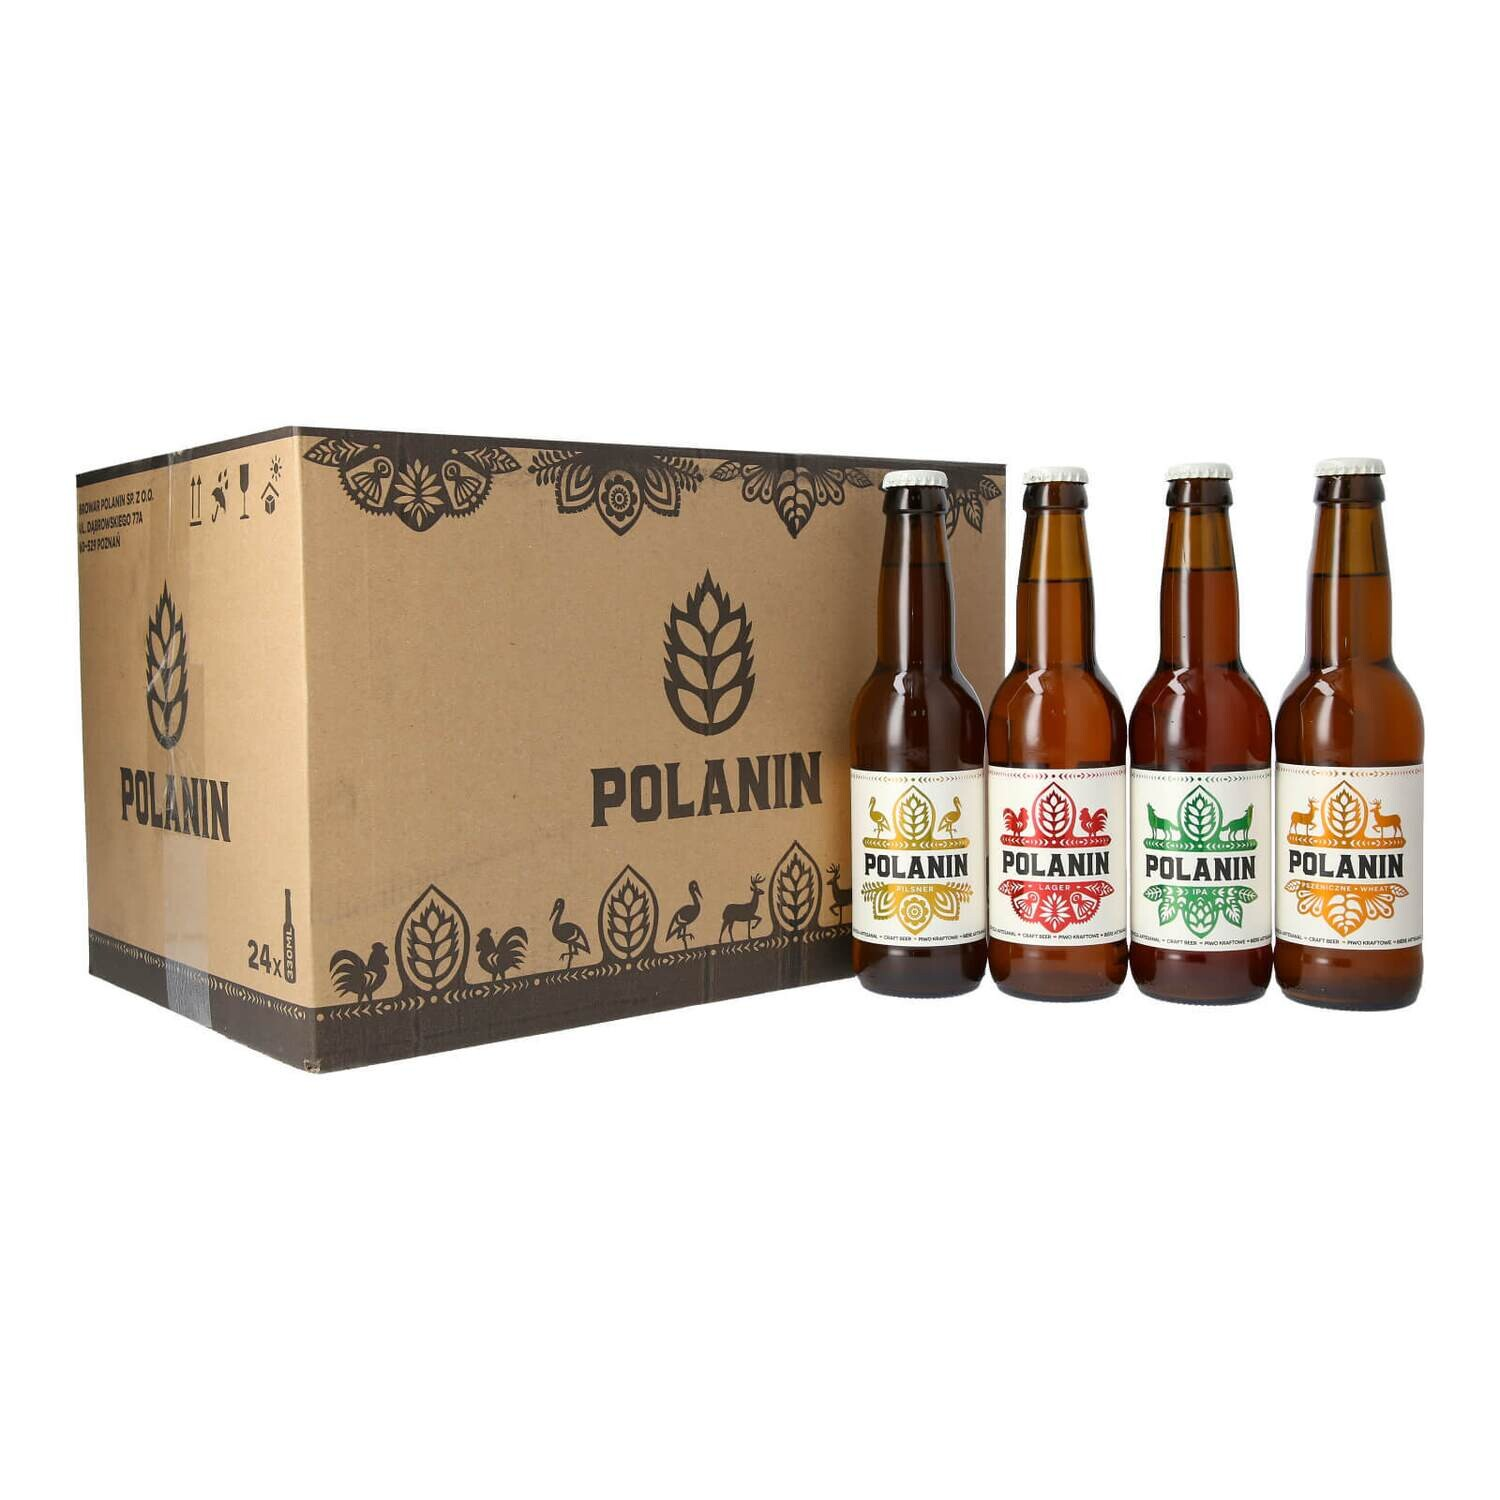 Polanin Mixed Party Case - 24 bottles (6 Lager, 6 Pilsner, 6 Wheat, 6 IPA)